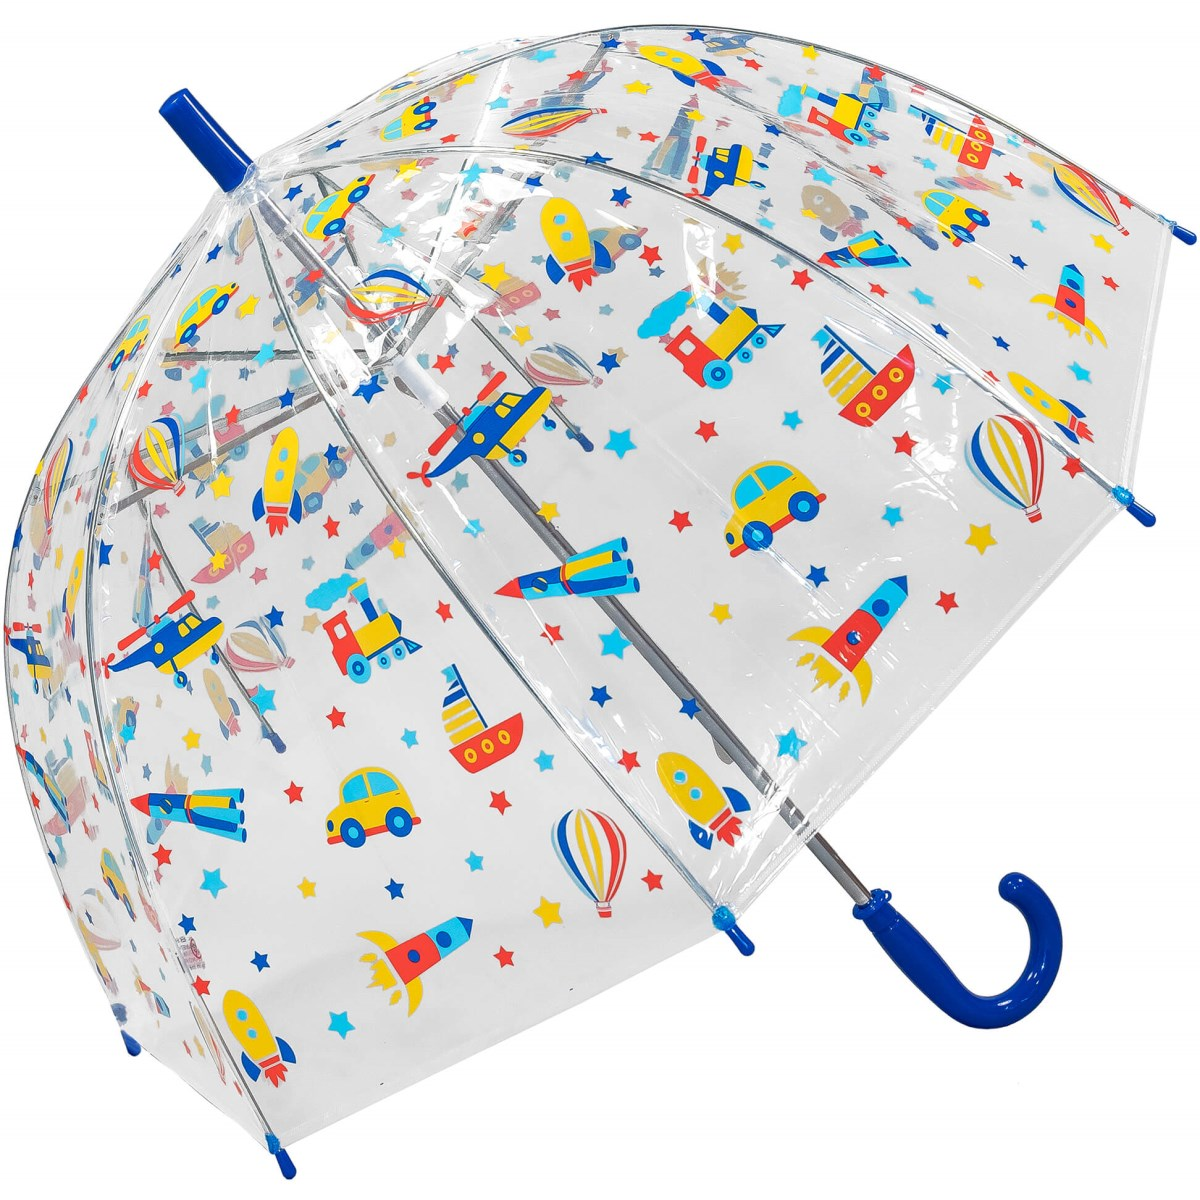 Kids See-through Dome Umbrella with Transport Print (18010)